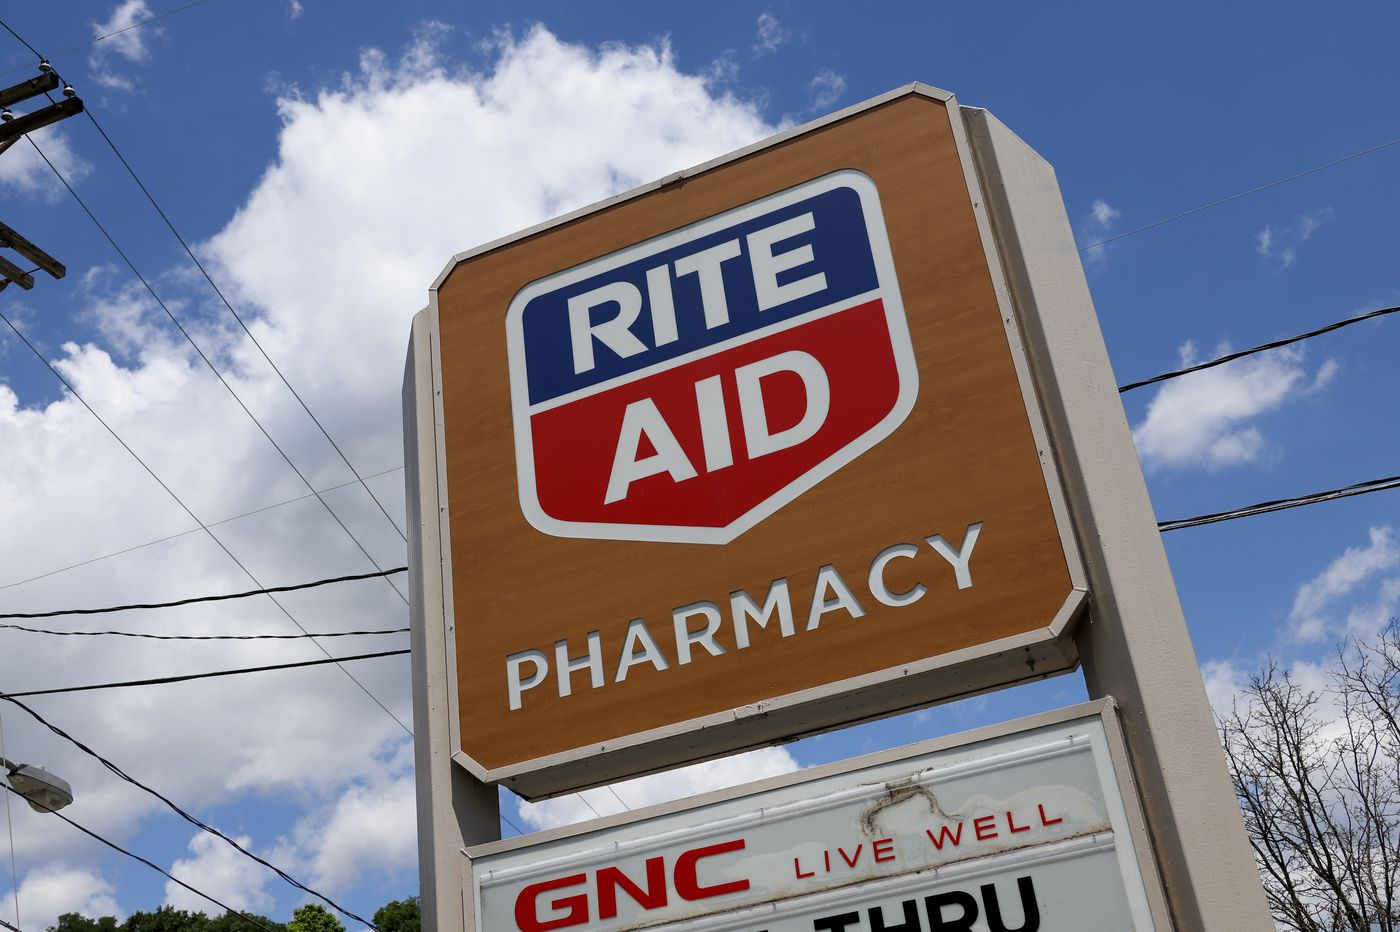 Rite Aid distribution center in Fairless Hills to close, costing 356 jobs